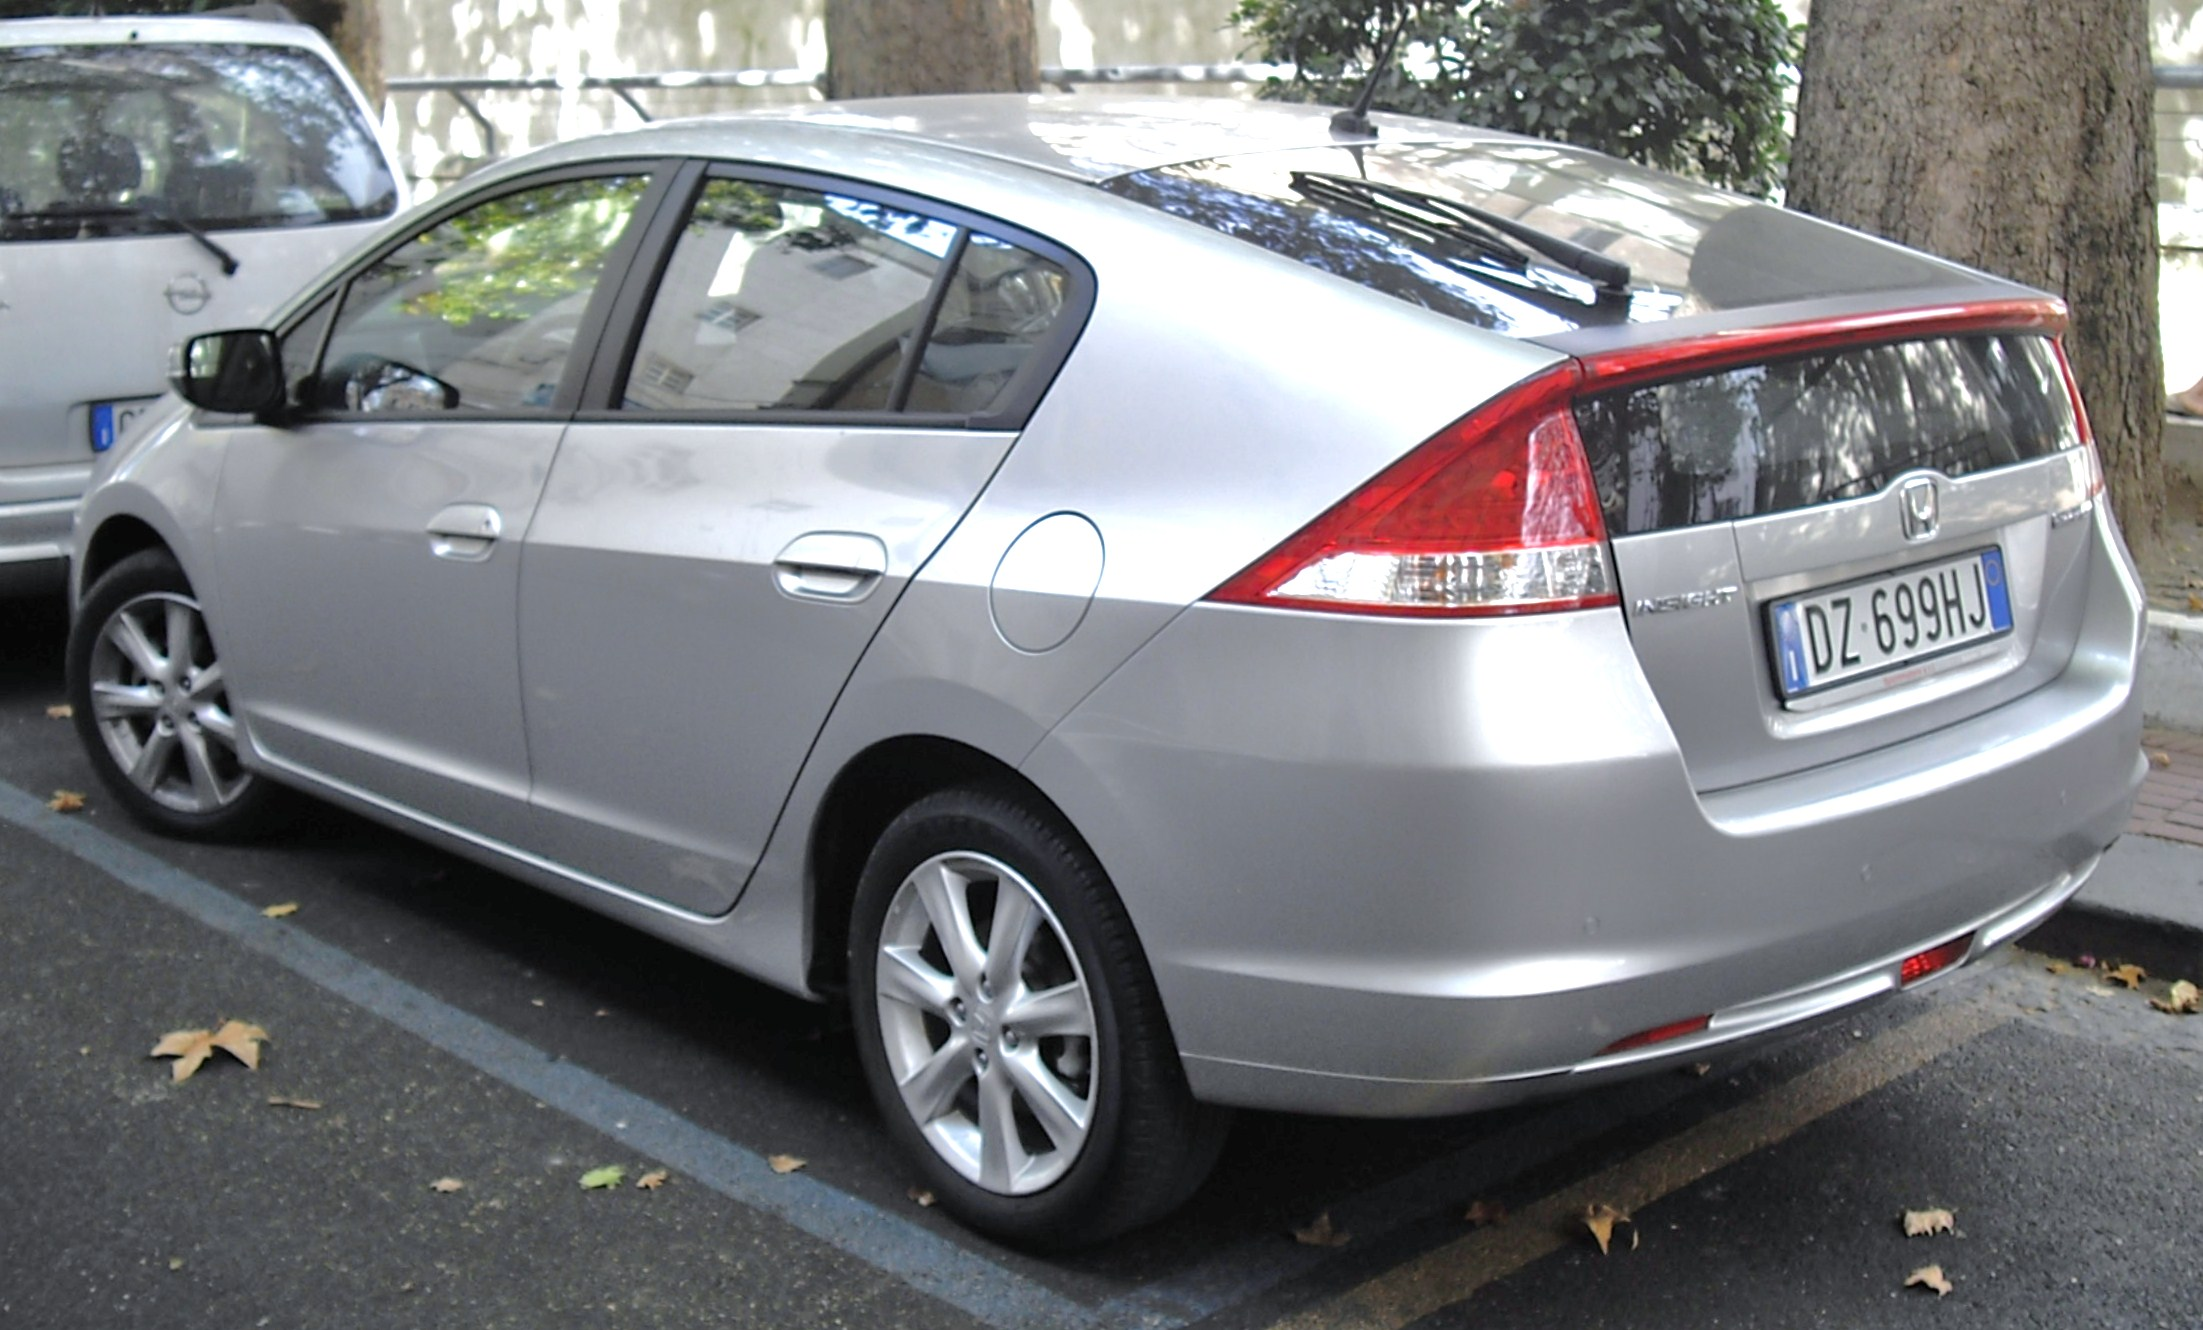 File:2010 Honda Insight Rear.JPG